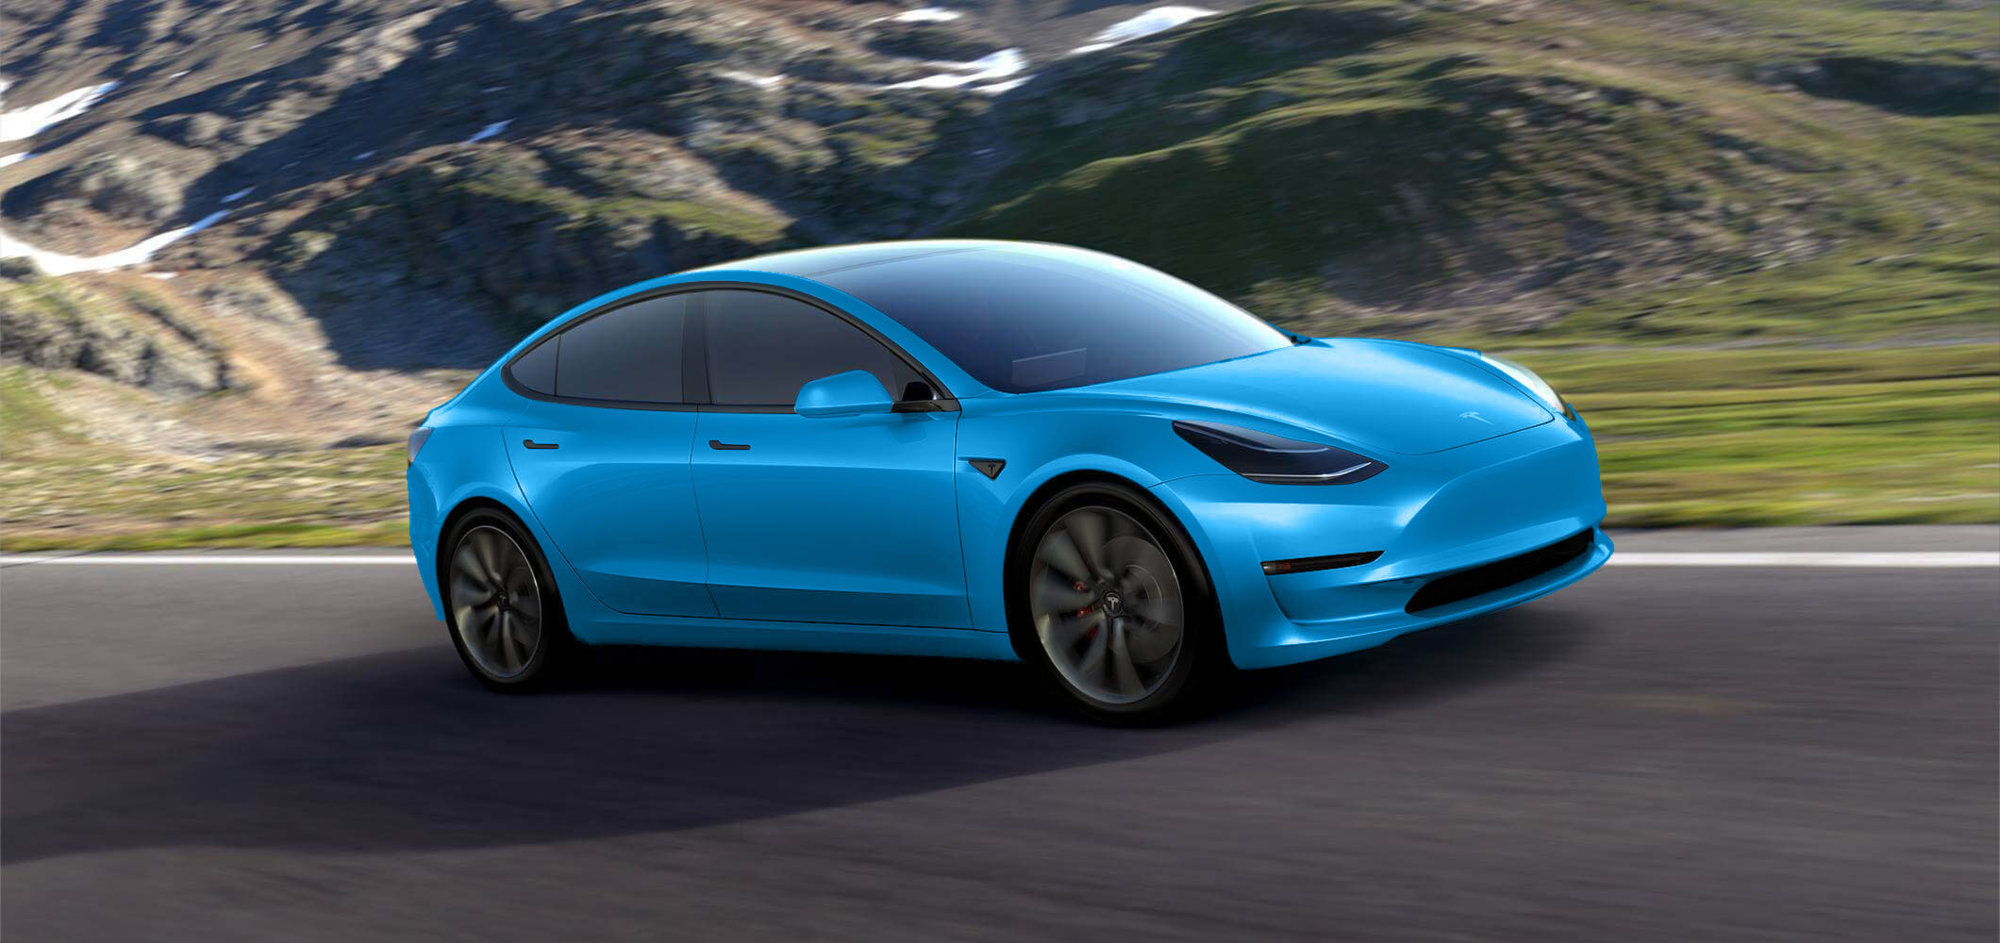 Blue Model Tesla Model 3 Gets Rendered In Dozens Of Colors Looks Good In All